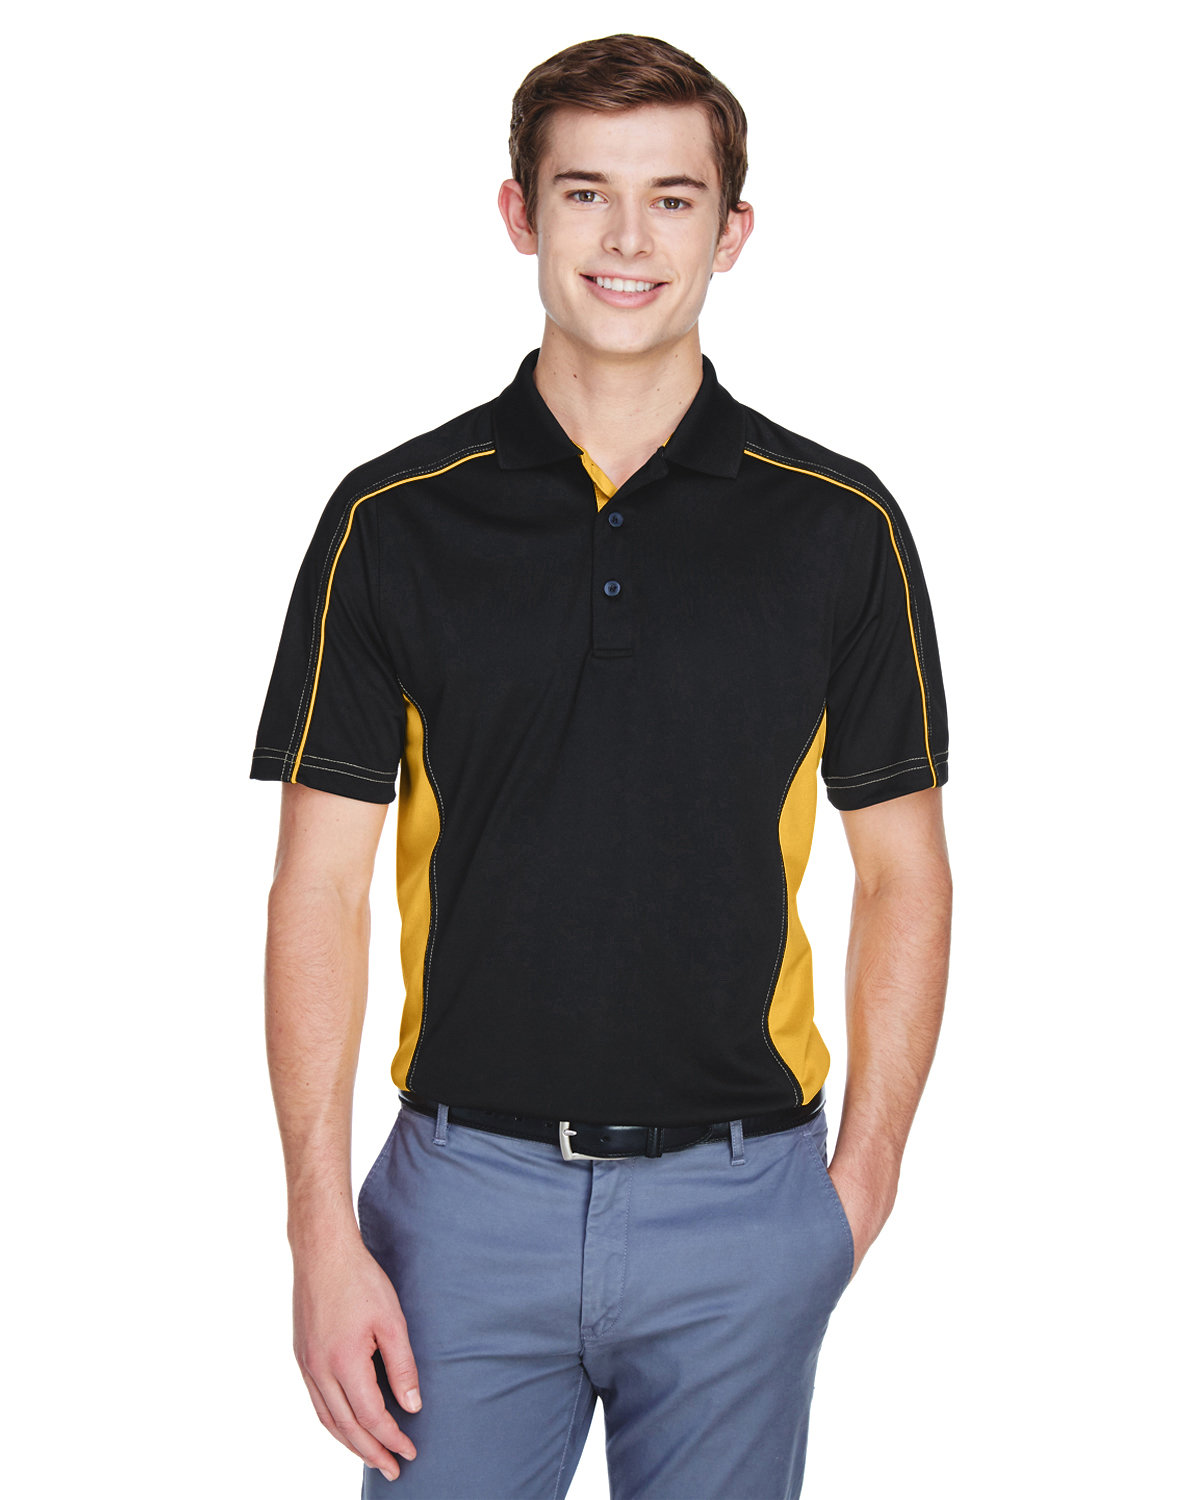 Extreme Men's Tall Eperformance™ Fuse Snag Protection Plus Colorblock Polo BLK/ CMPS GOLD